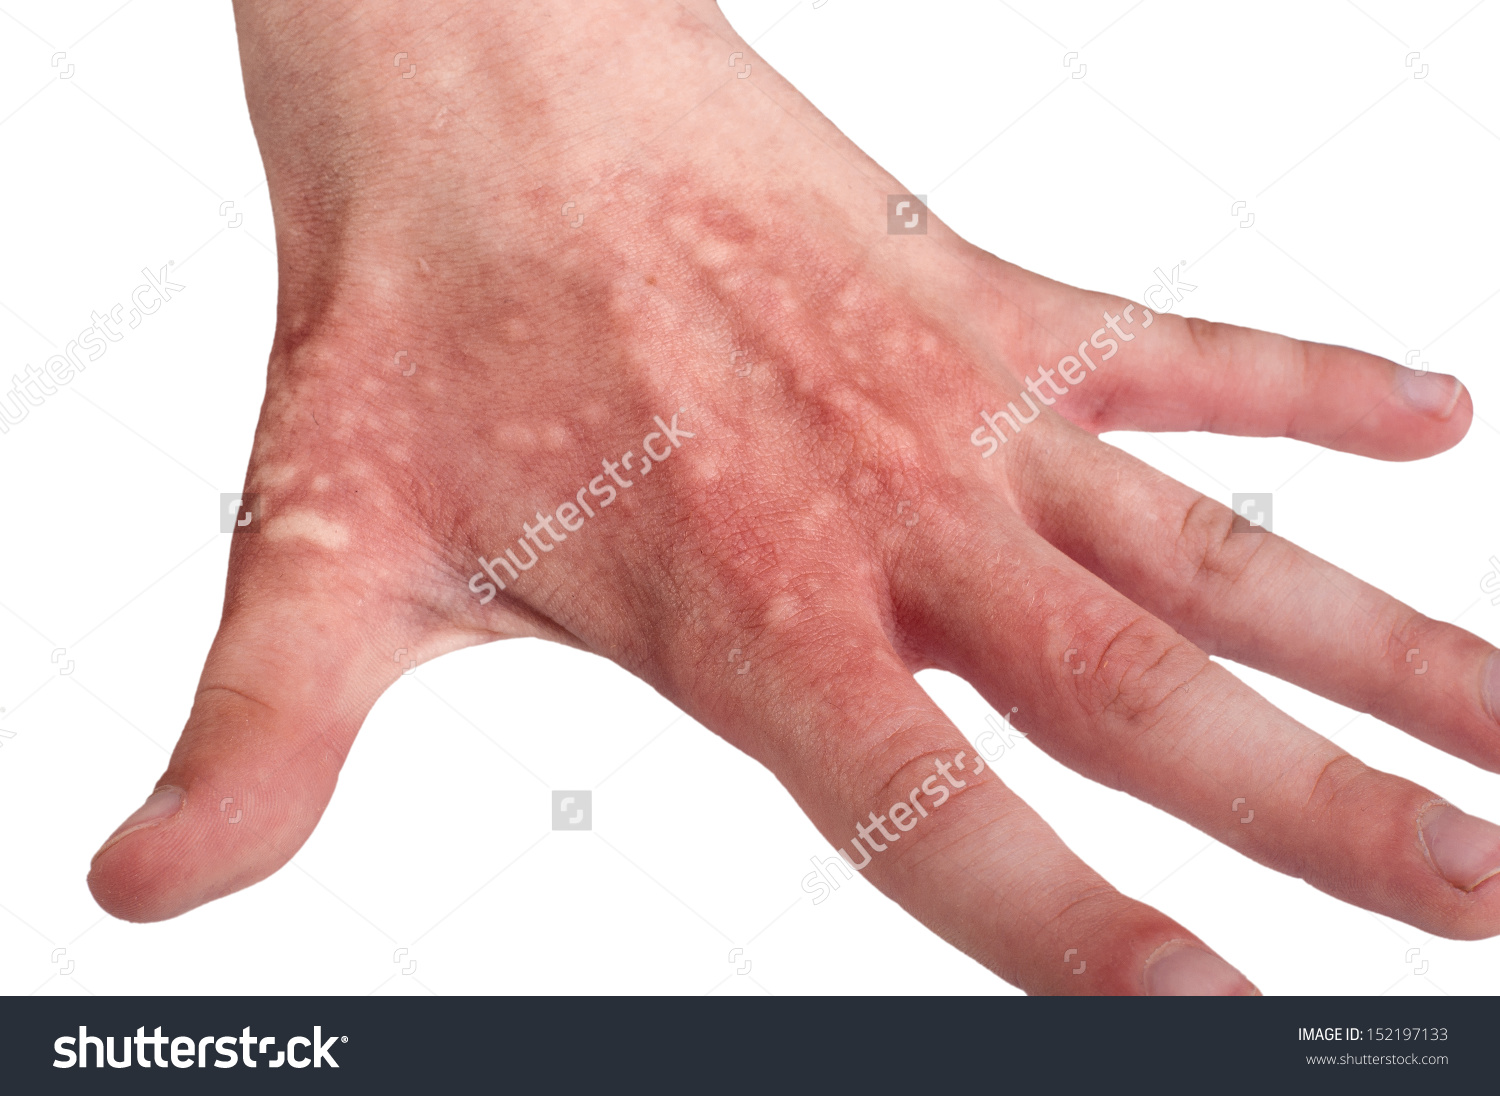 Hand Teenager Blisters Due Burns Hogweed Stock Photo 152197133.